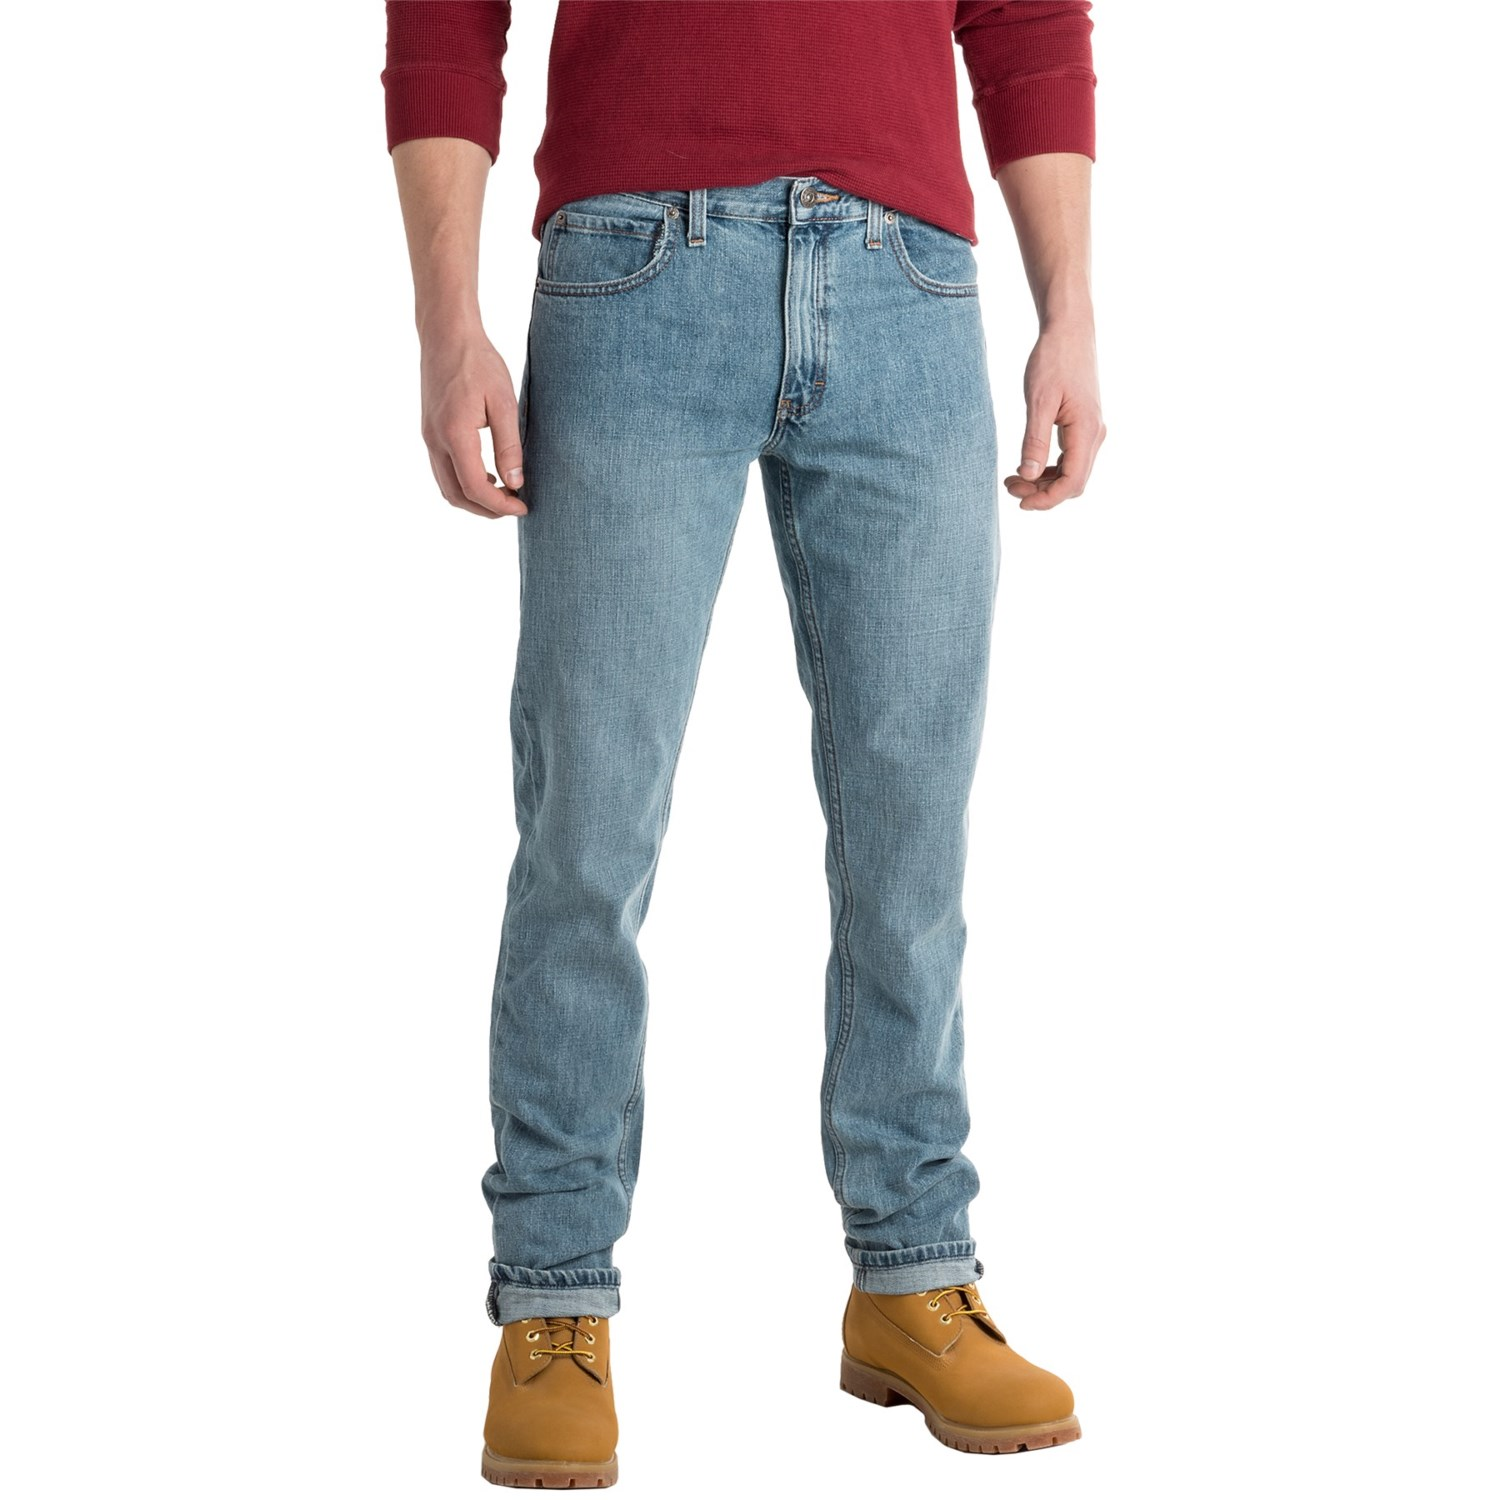 Athletic Skinny Jeans for Men Abercrombie & Fitch's Athletic Skinny jeans for men are the perfect combination of a sleek silhouette and a classic straight fit. Relaxed slim fit in the thigh.